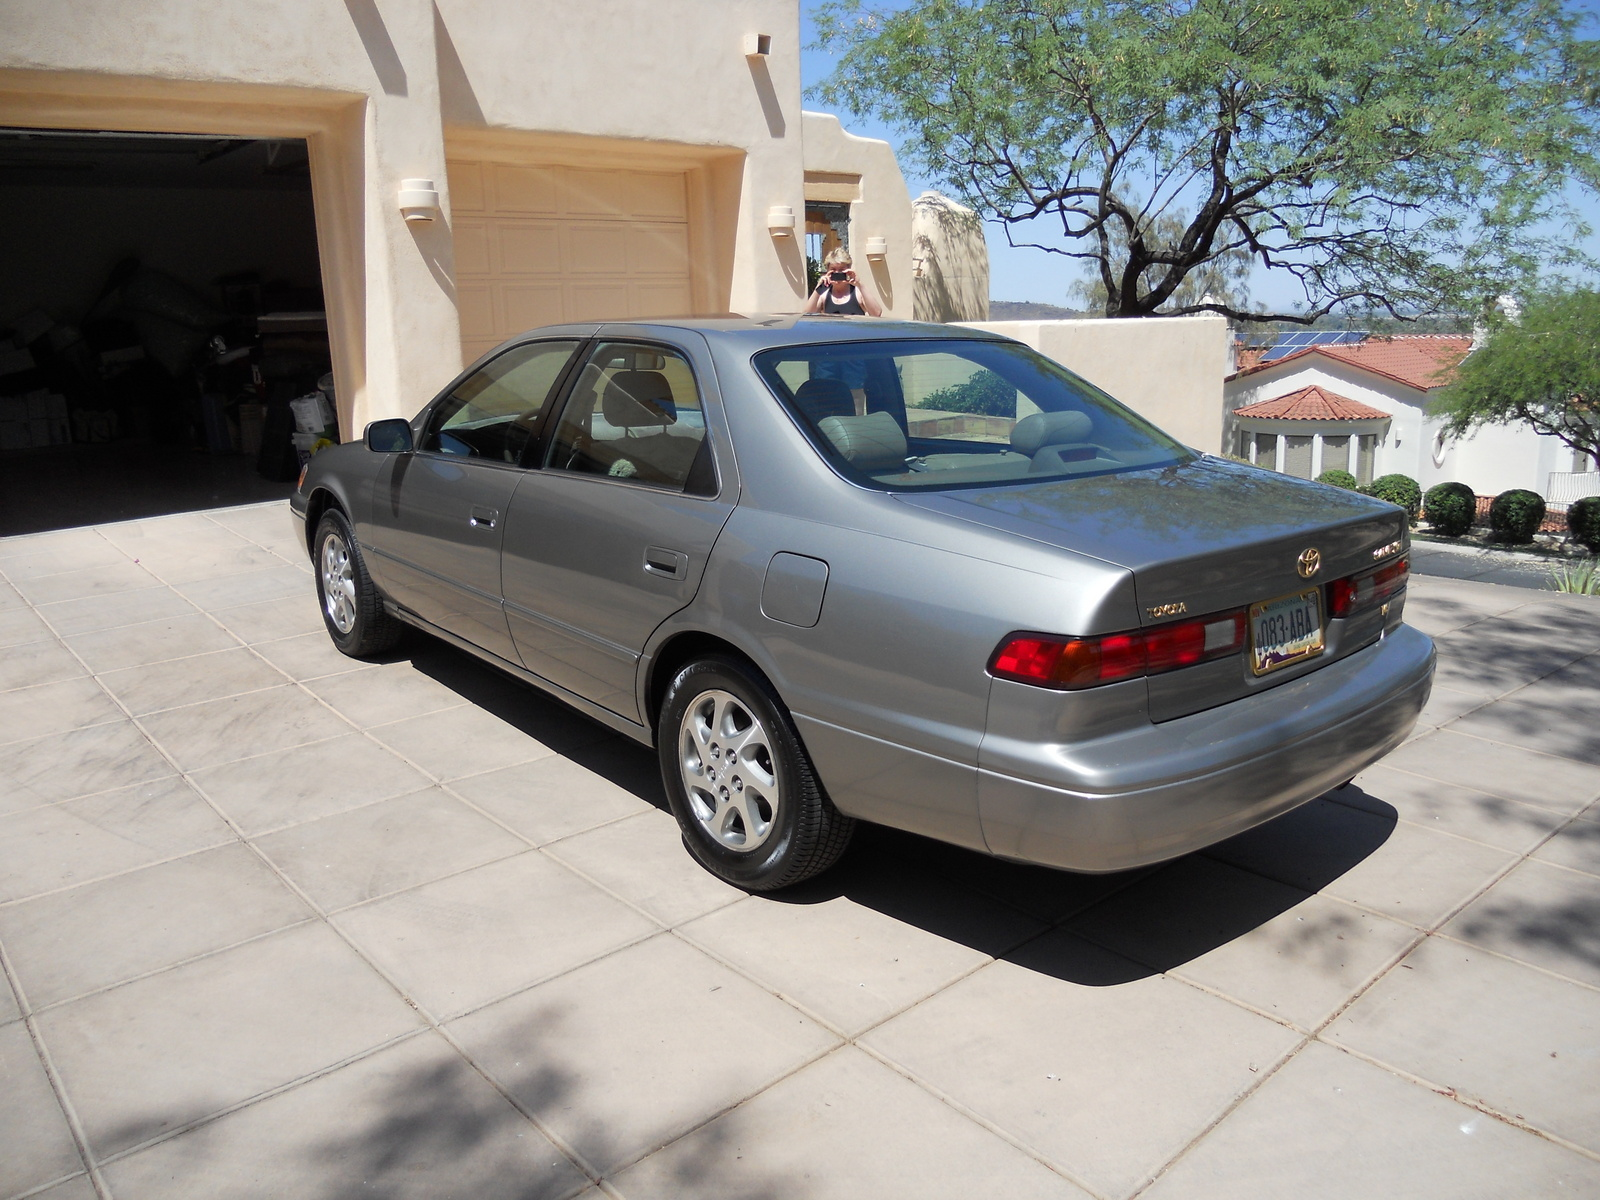 1997 Toyota Camry XLE V6 picture, exterior